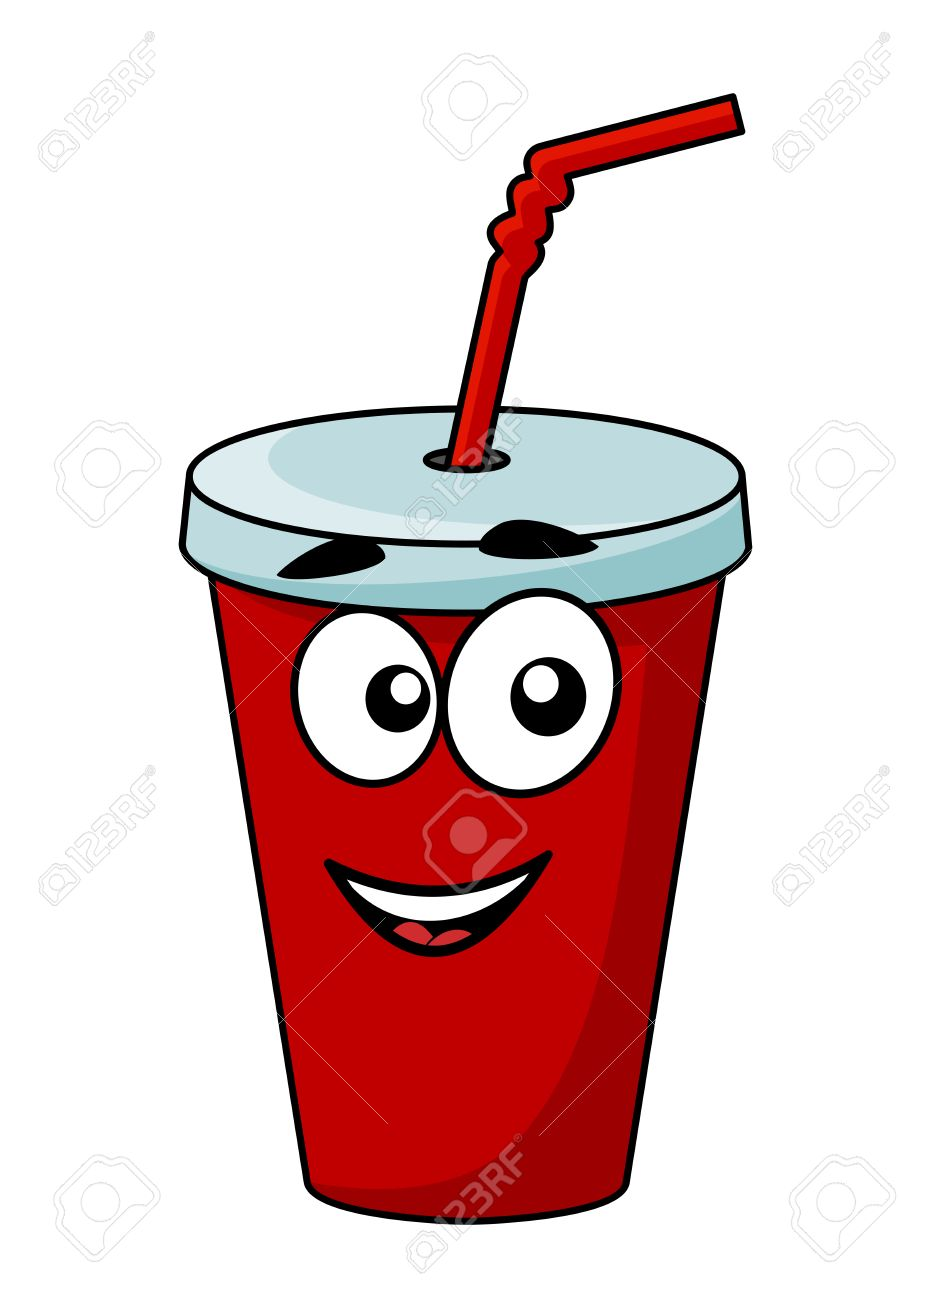 cartoon takeaway soda drink in a covered cup with a straw with rh 123rf com Angry Smiley Face Clip Art Crying Smiley Face Clip Art